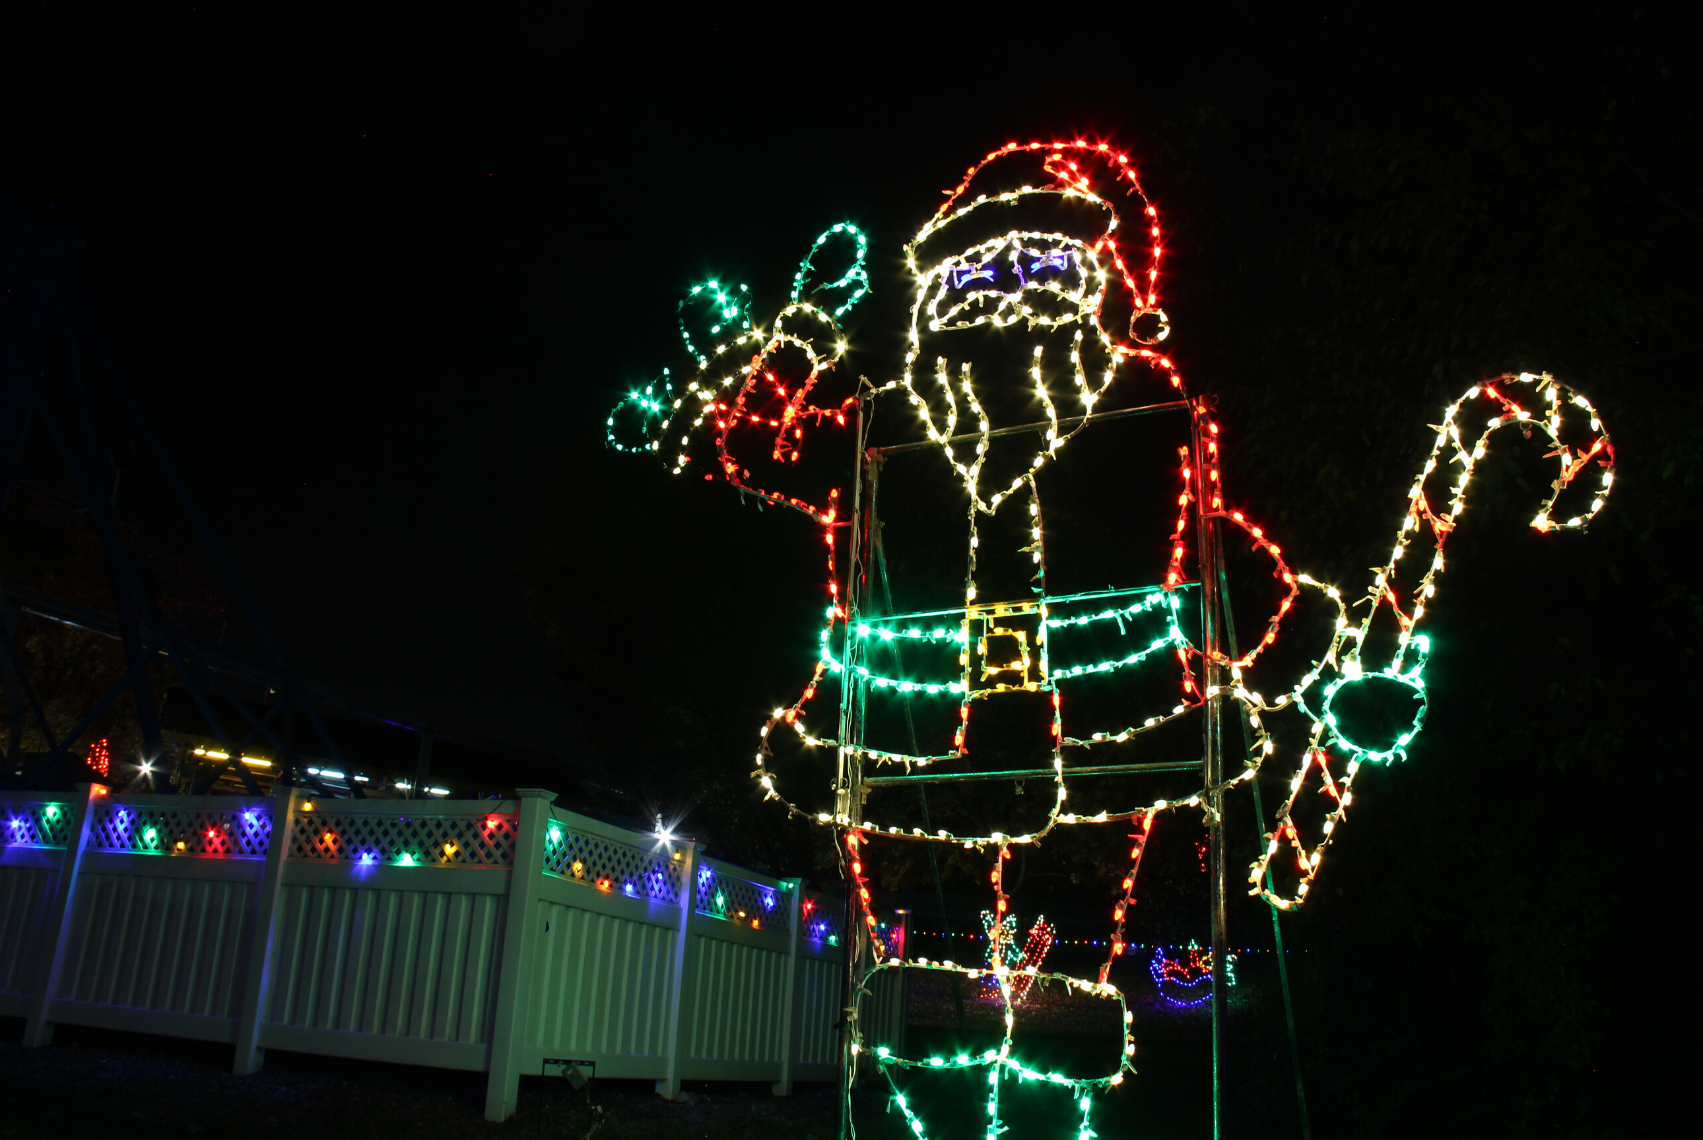 Santa made of holiday lights